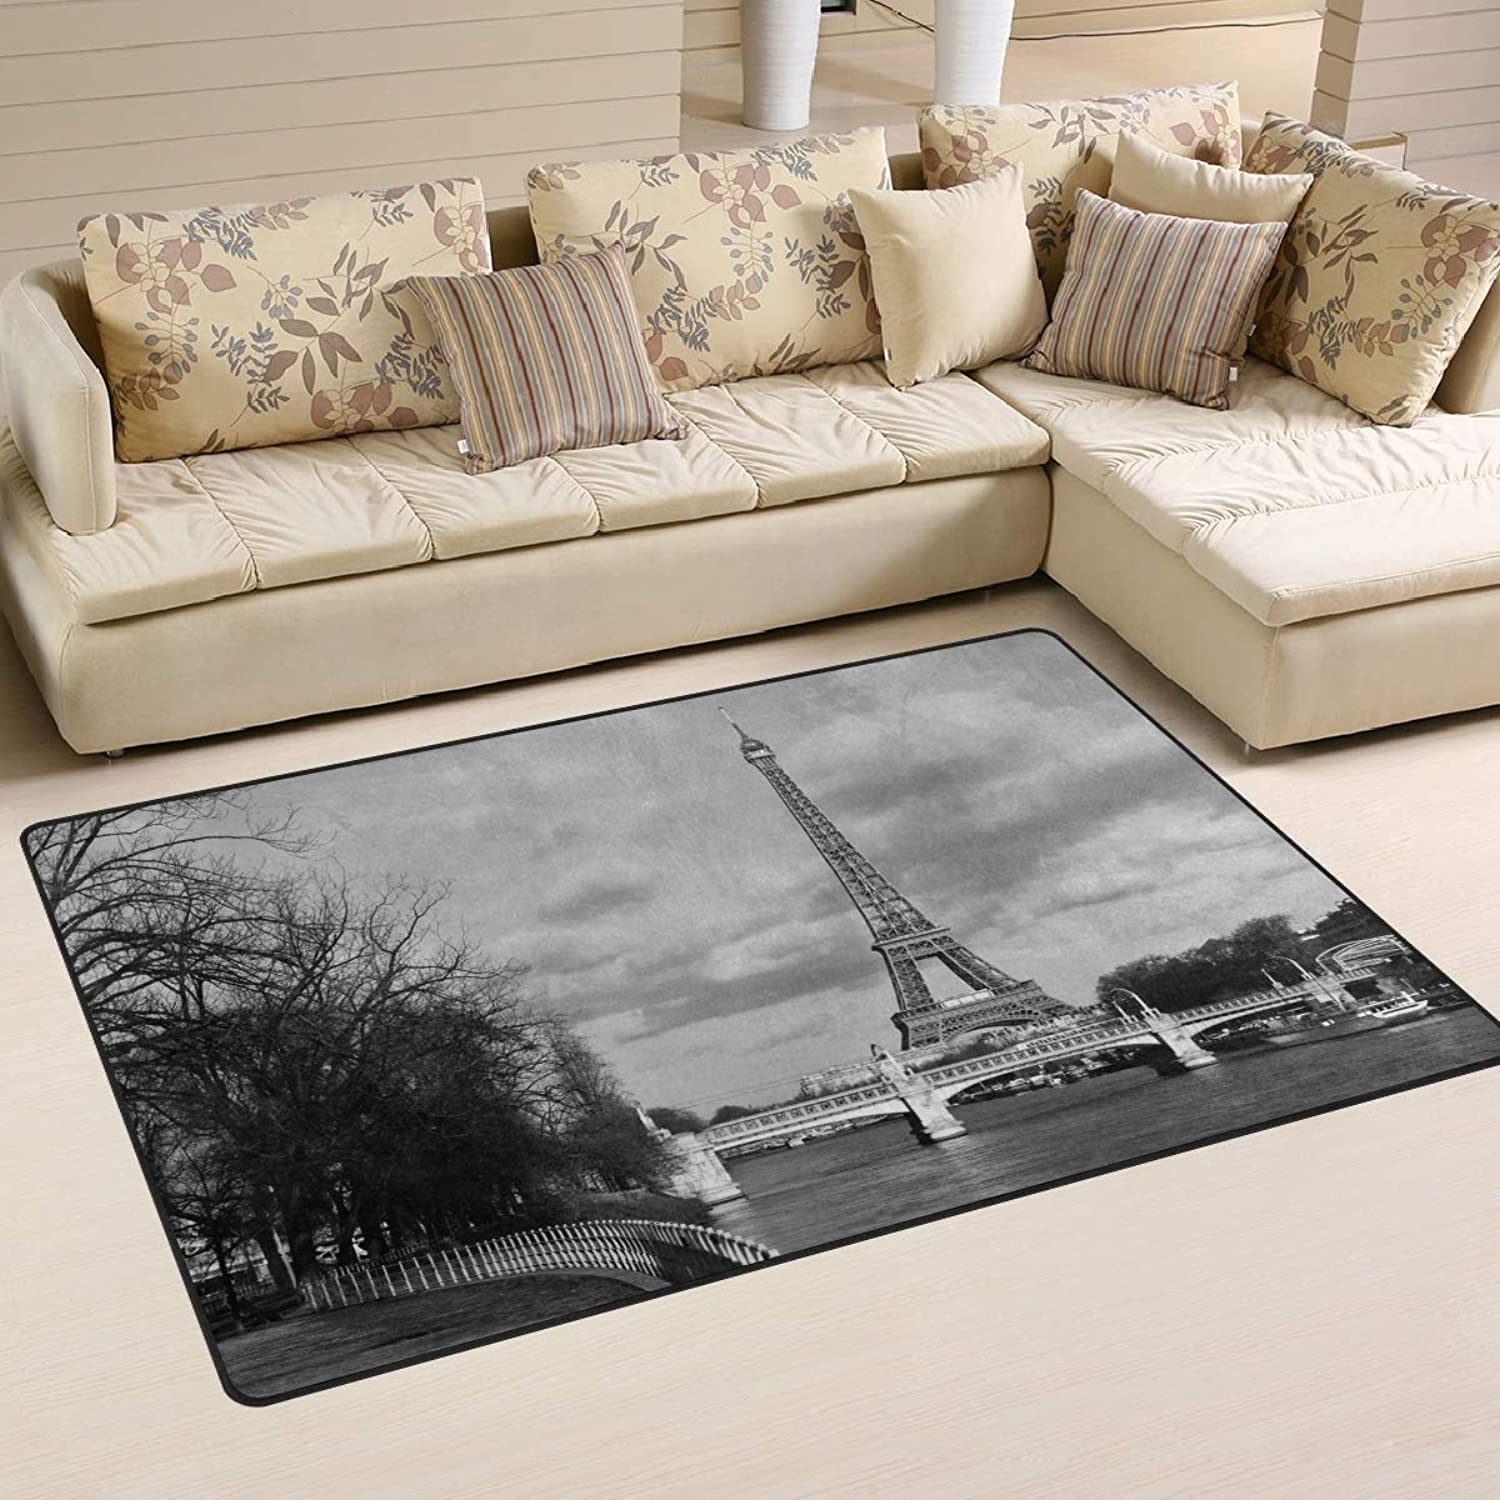 Area Rugs Doormats Black and White Eiffel Tower 5'x3'3 (60x39 Inches) Non-Slip Floor Mat Soft Carpet for Living Dining Bedroom Home